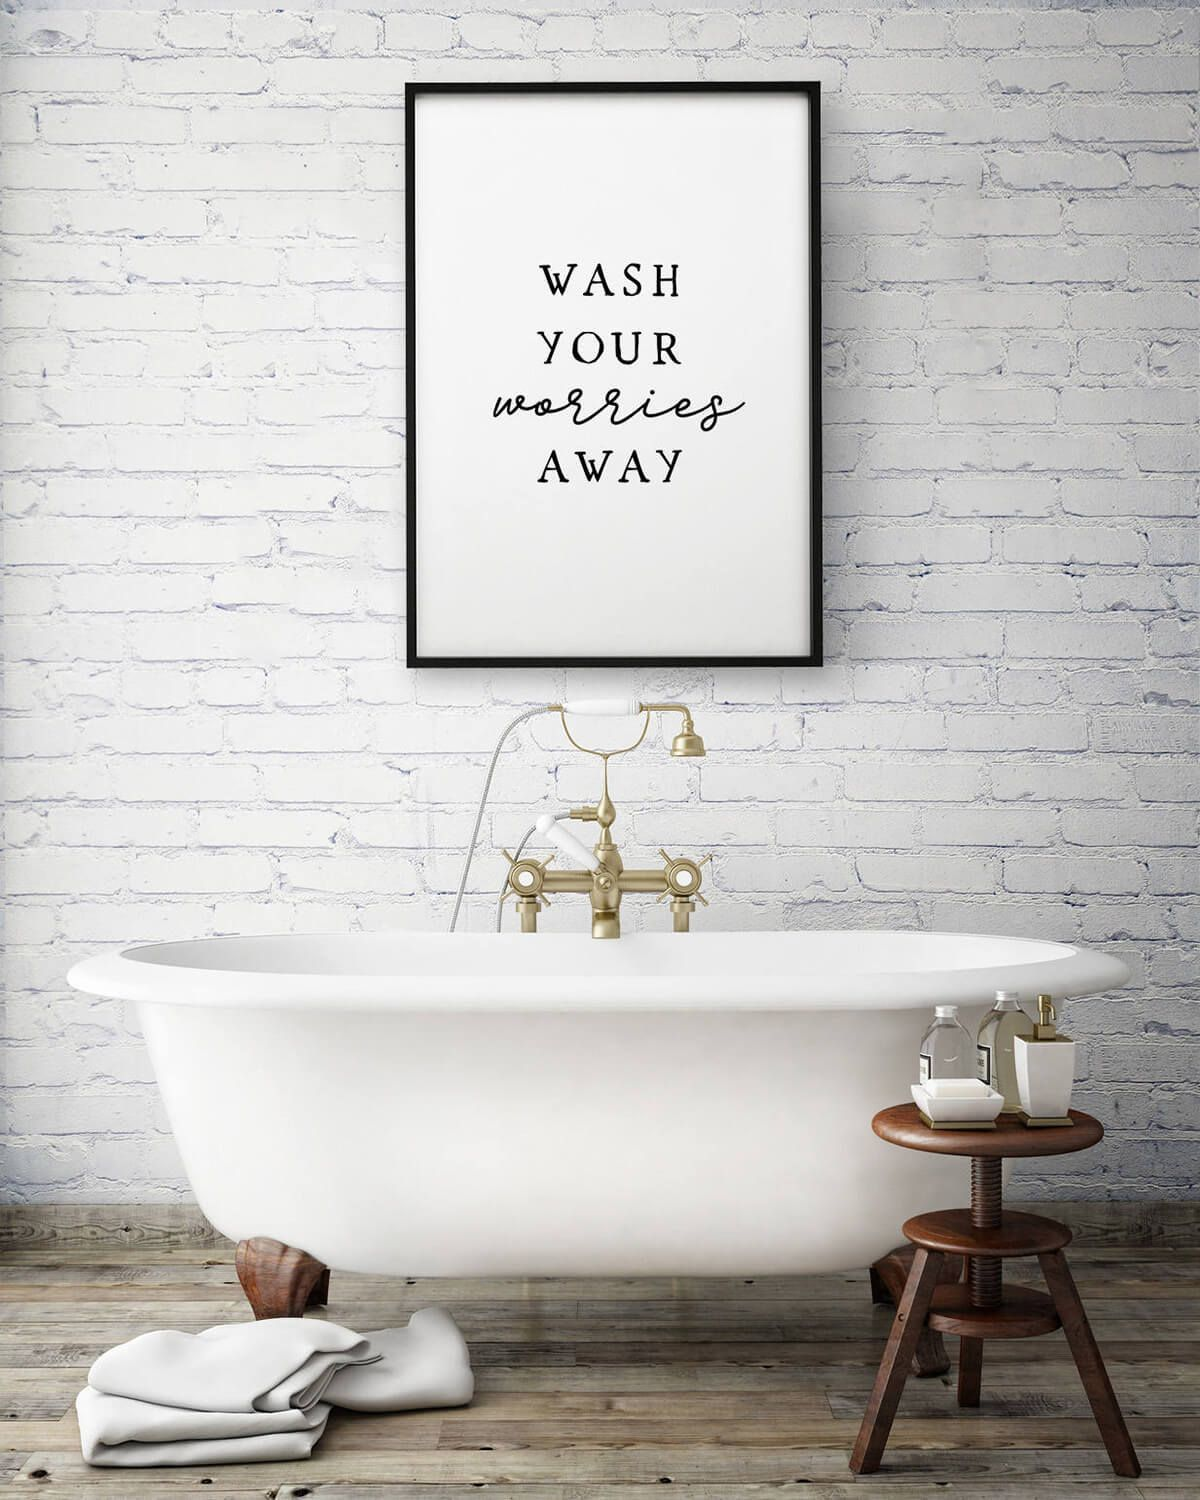 Wash Your Worries Away Wall Sign Guest Bathroom Decor Bathroom Art Prints Bathroom Prints